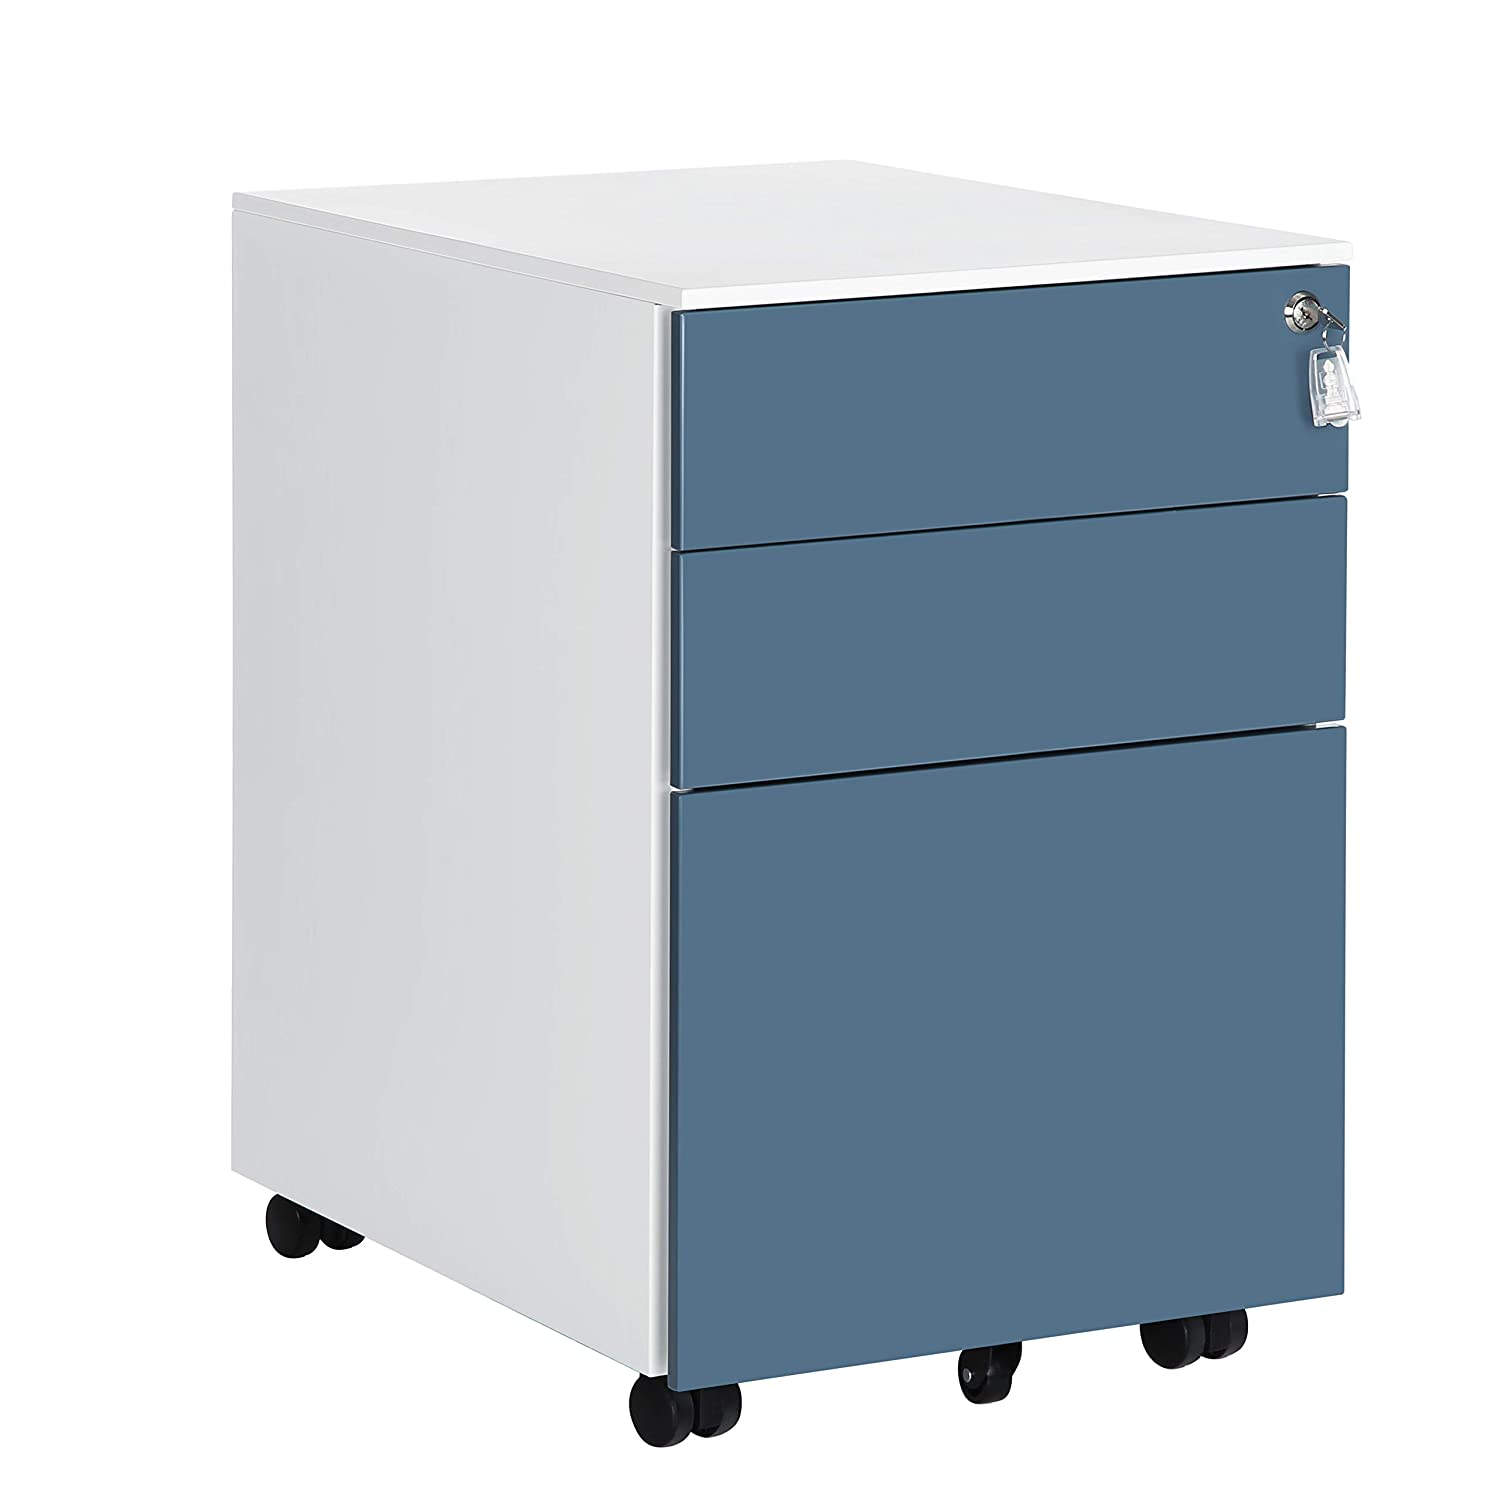 "SONGMICS UOFC60WB Mobile File Cabinet, 20.5""L x 15.4""W x 23.6""H, White + Blue"